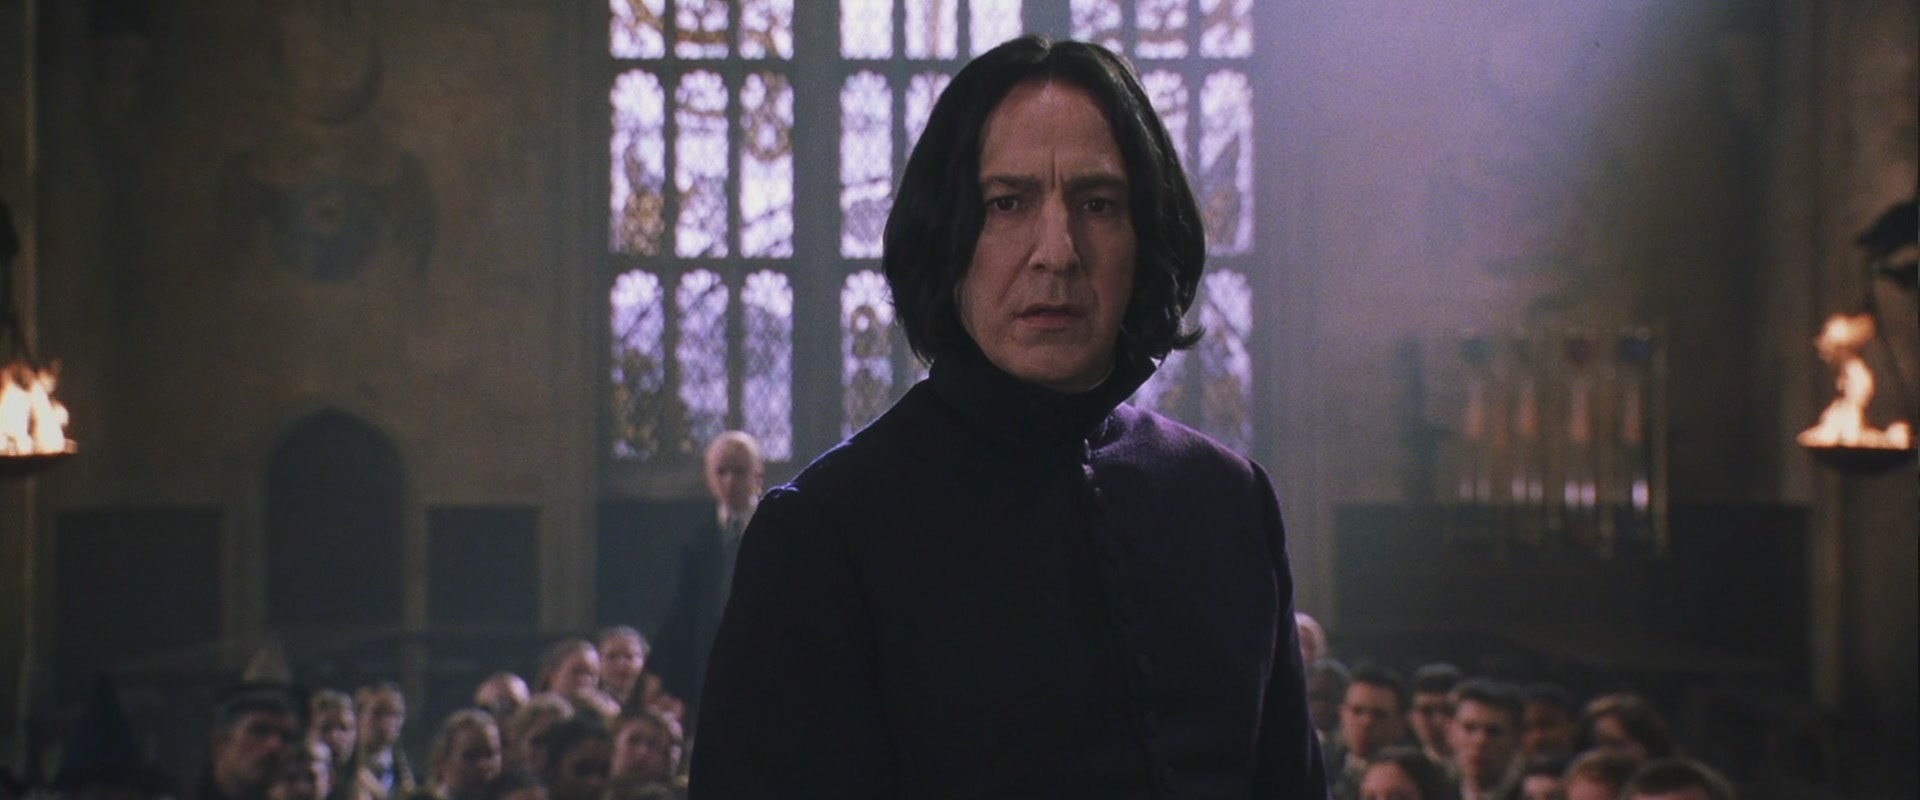 Here are Professor Snape's best moments in chronological order —prepare to sob